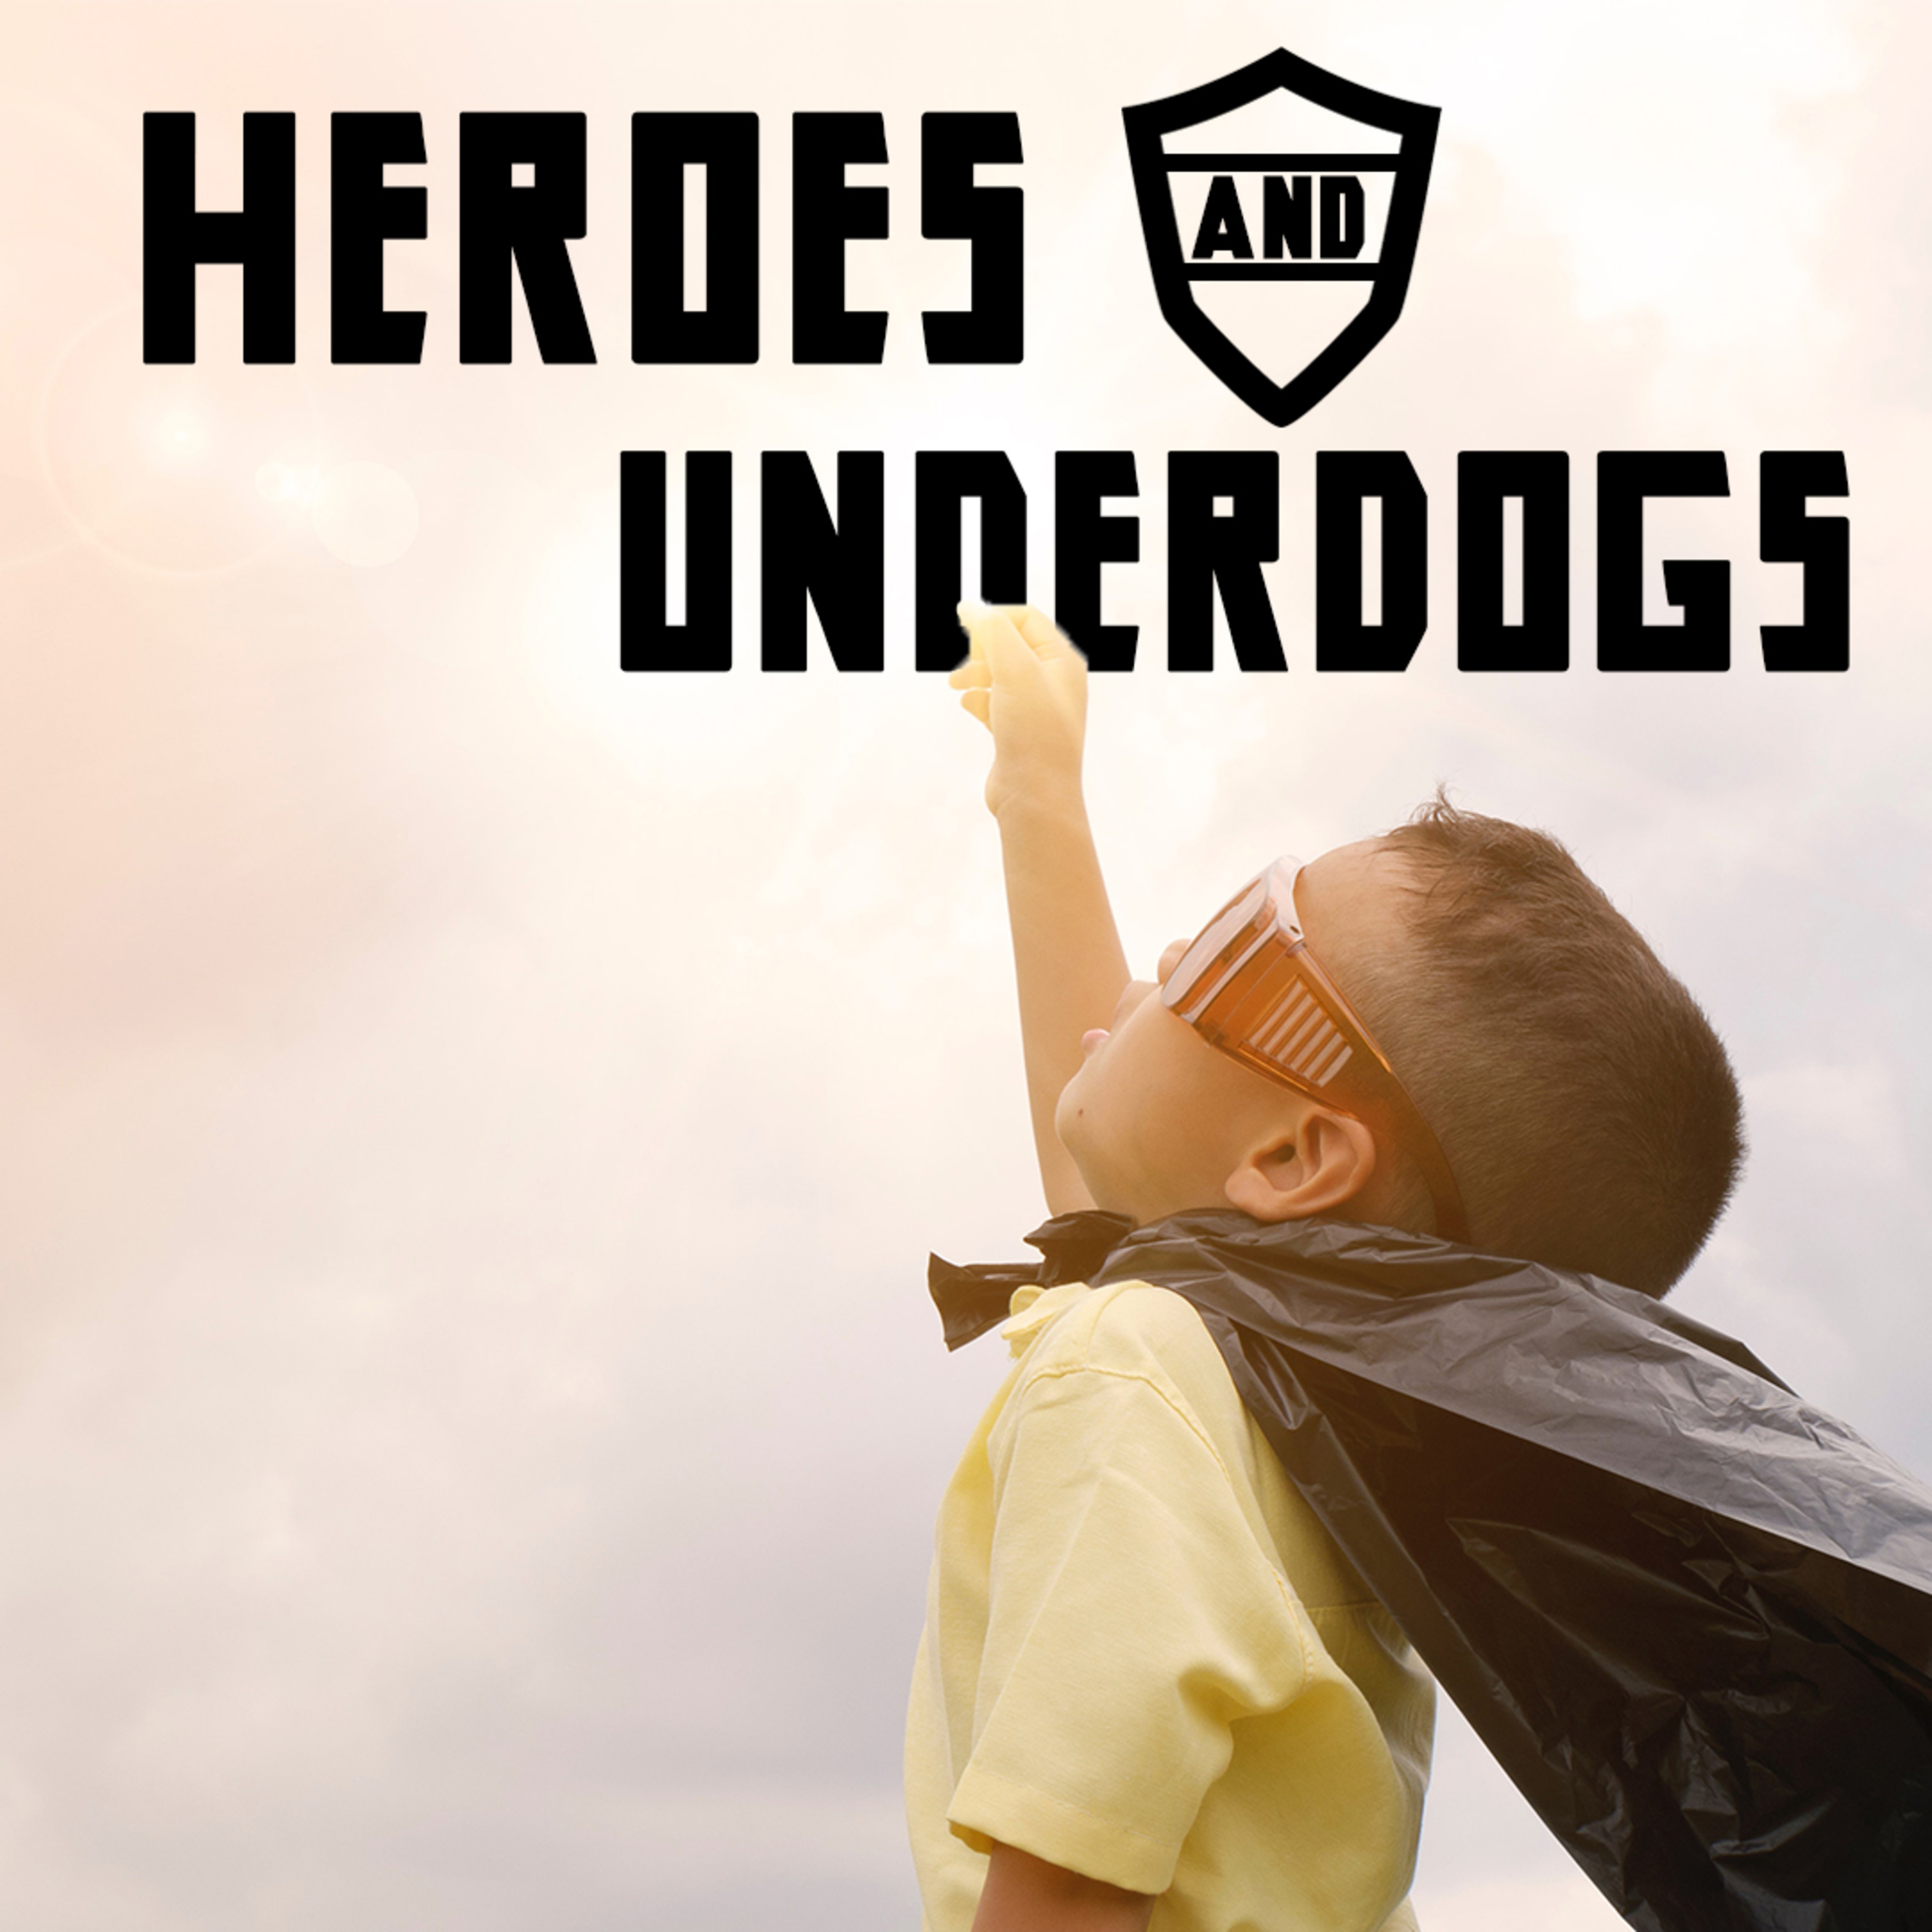 Heroes and Underdogs #24